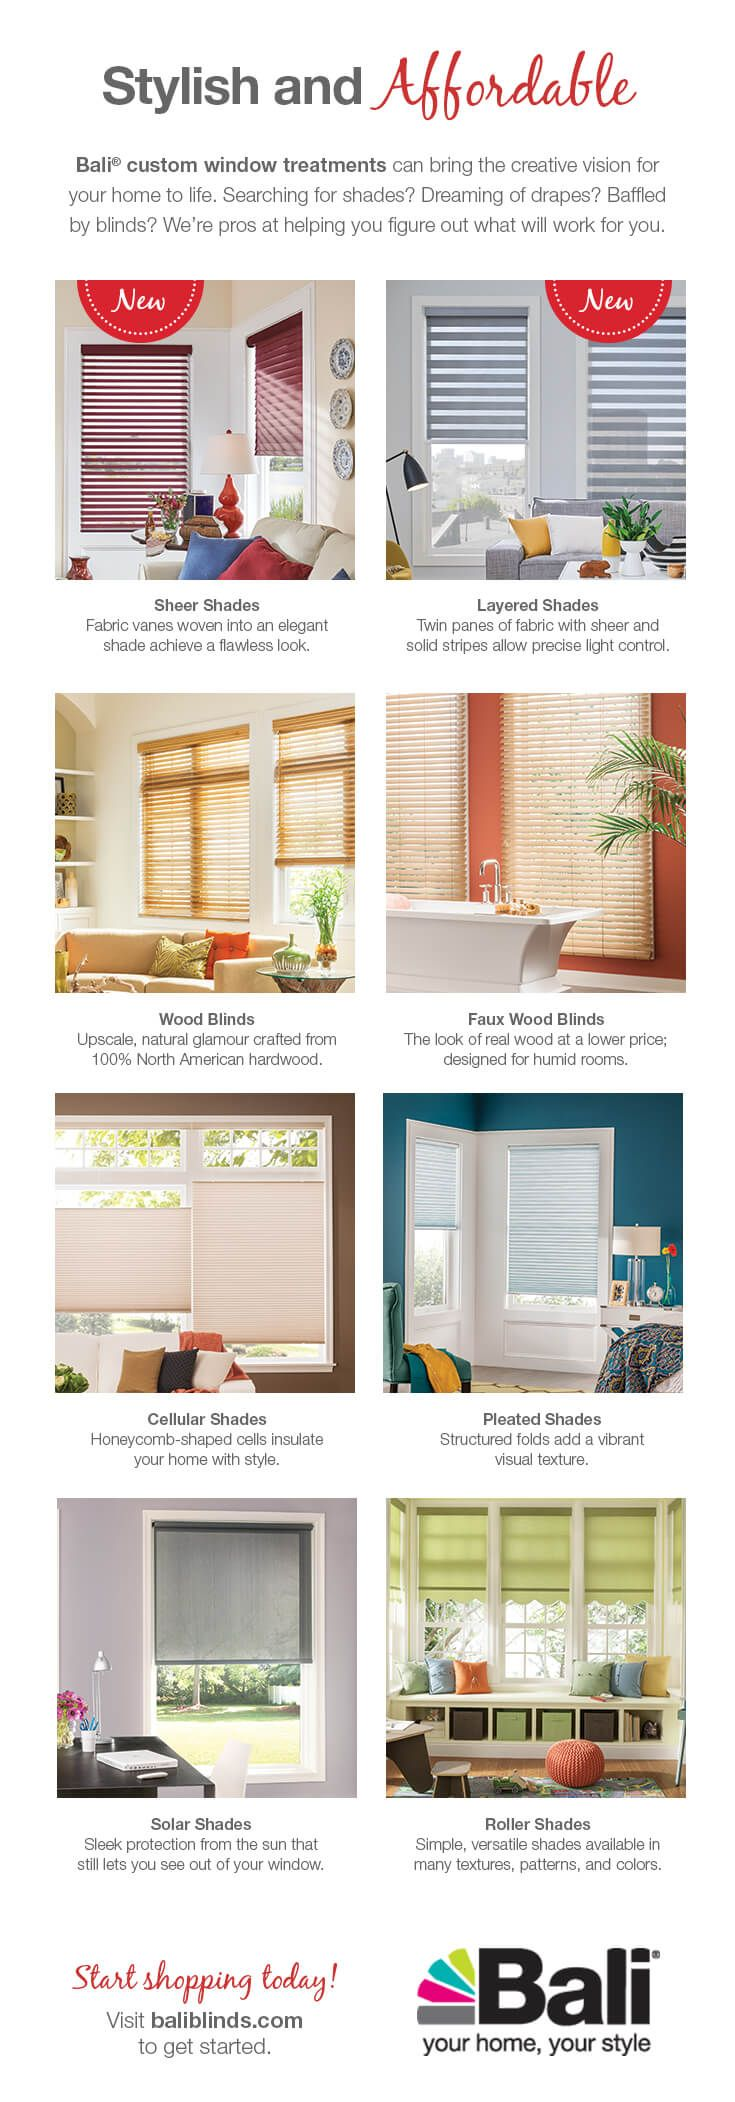 Bali Custom Window Treatments Are Stylish And Affordable Find Something For Your Home In One Of Our Top Product Li Blinds Bali Blinds Custom Window Treatments